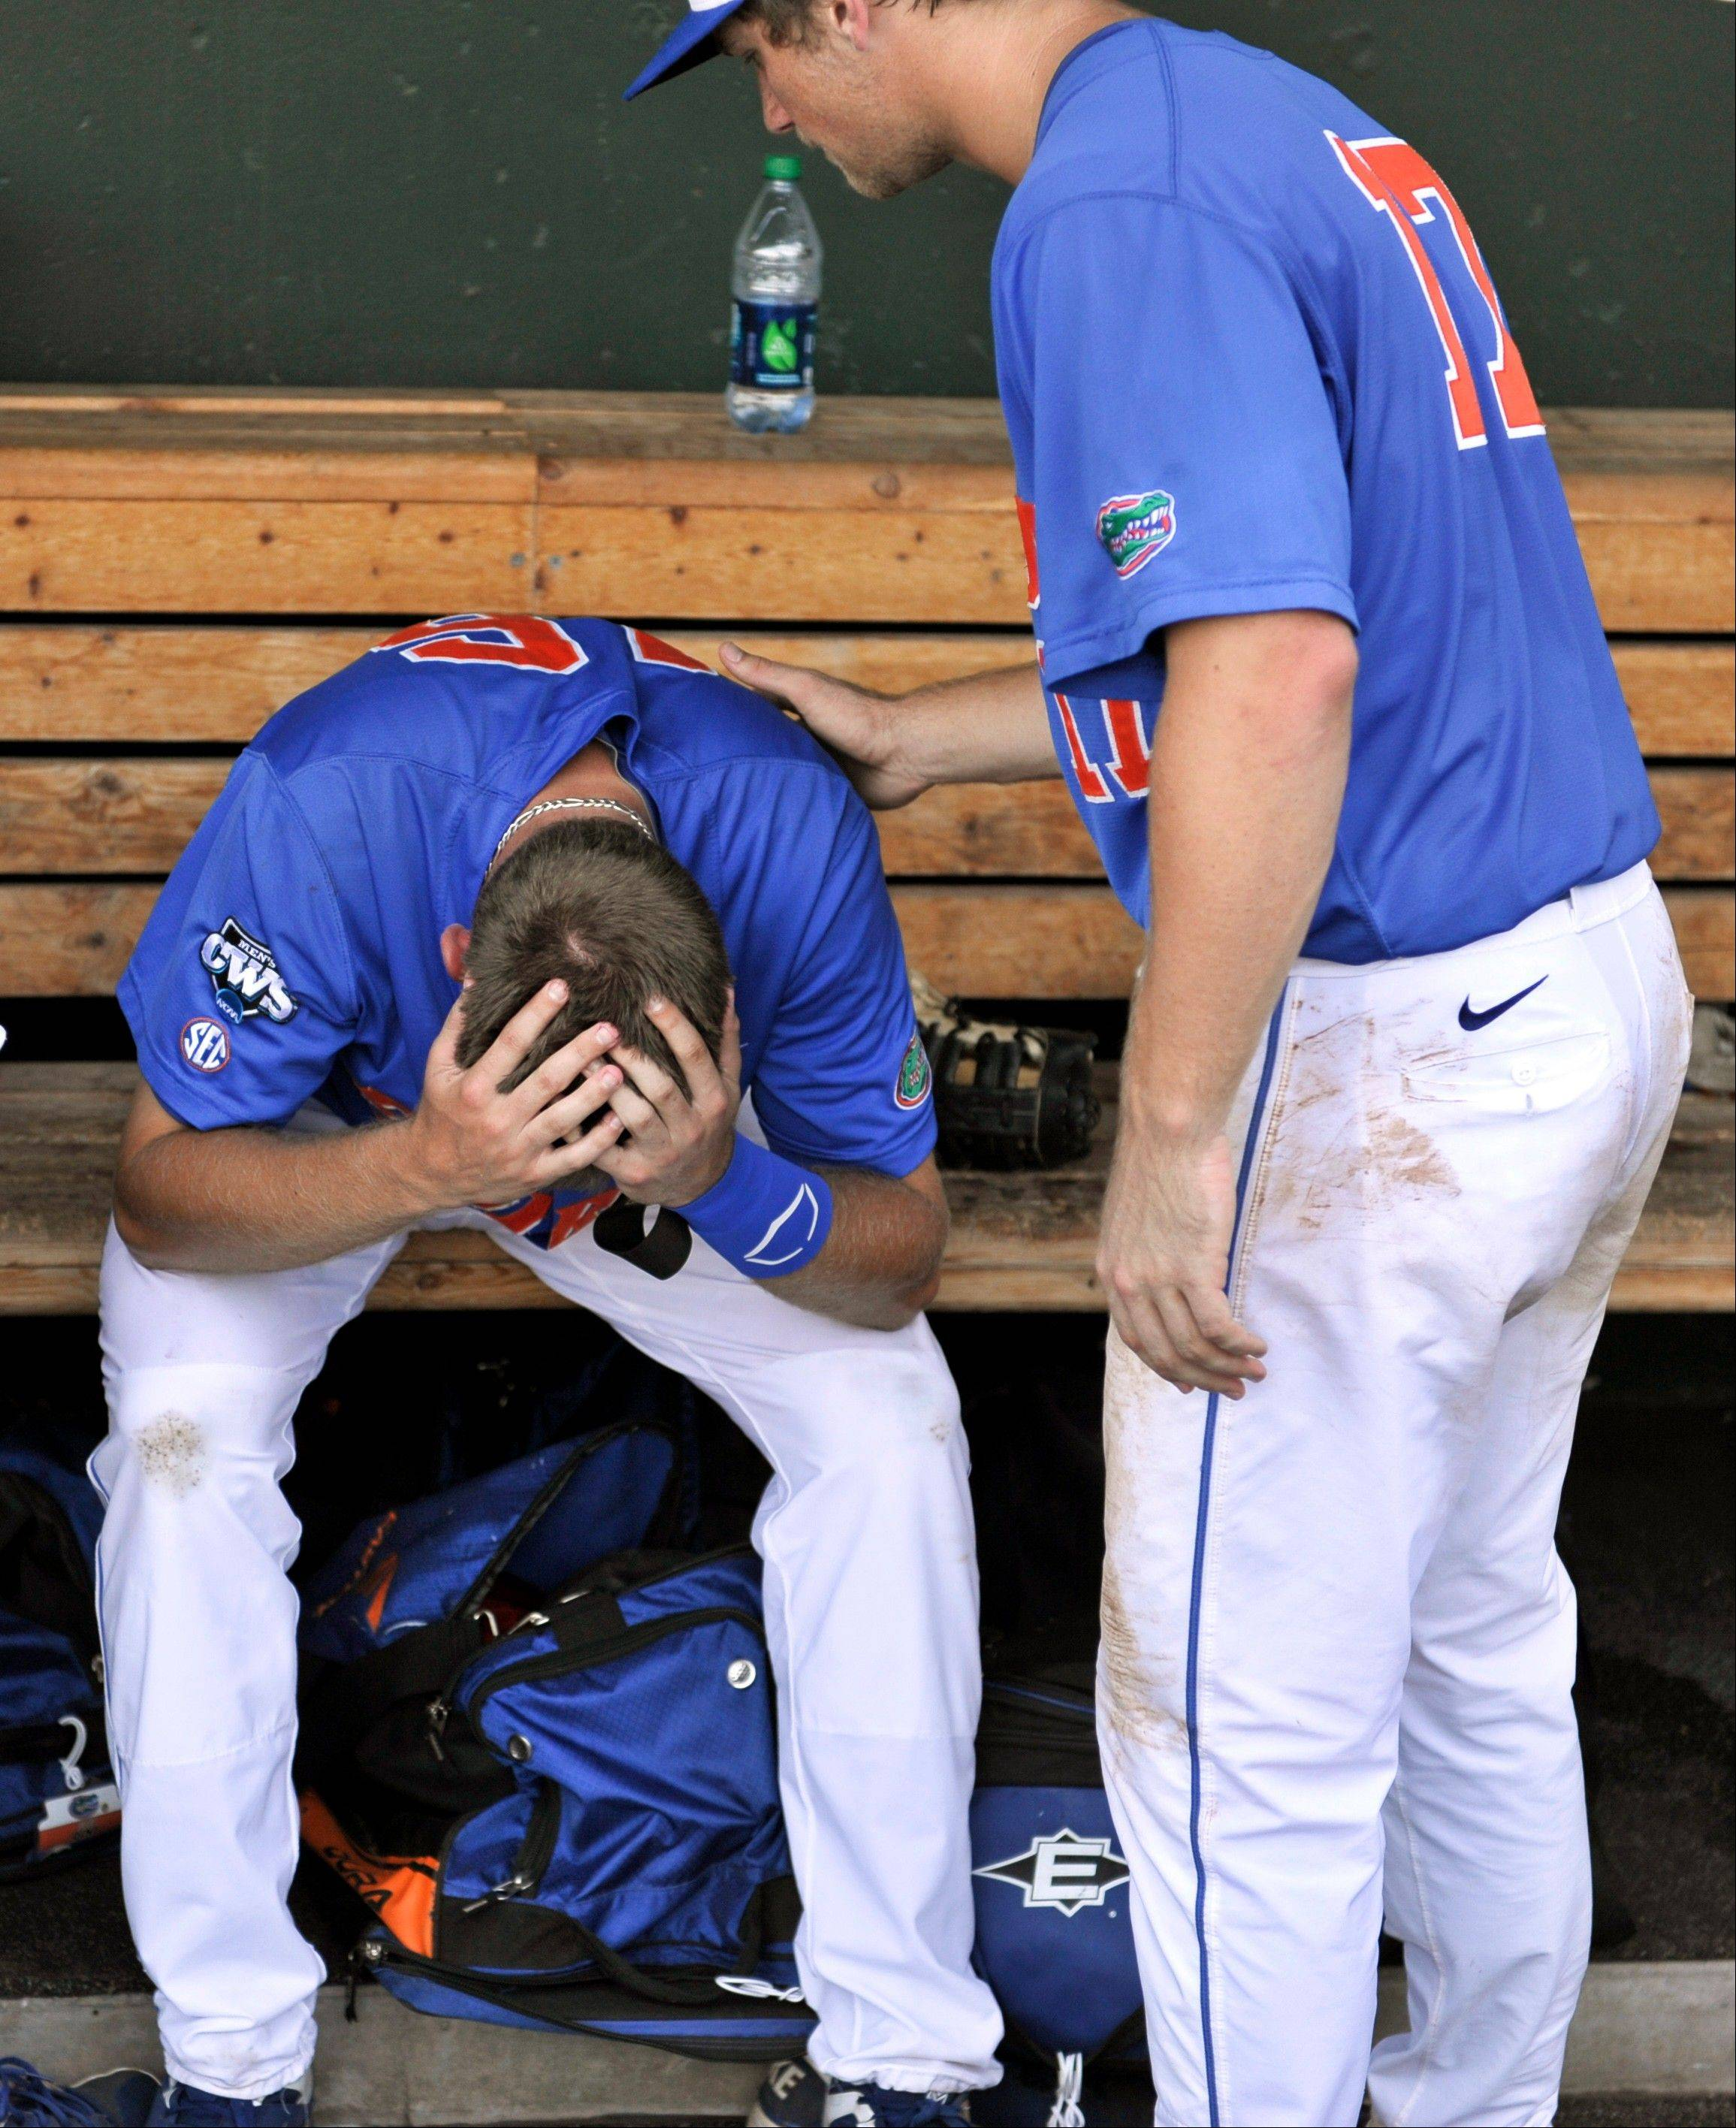 Florida's Taylor Gushue consoles teammate Justin Shafer, left, after they lost 5-4 to Kent State in an NCAA College World Series elimination game Monday in Omaha, Neb.